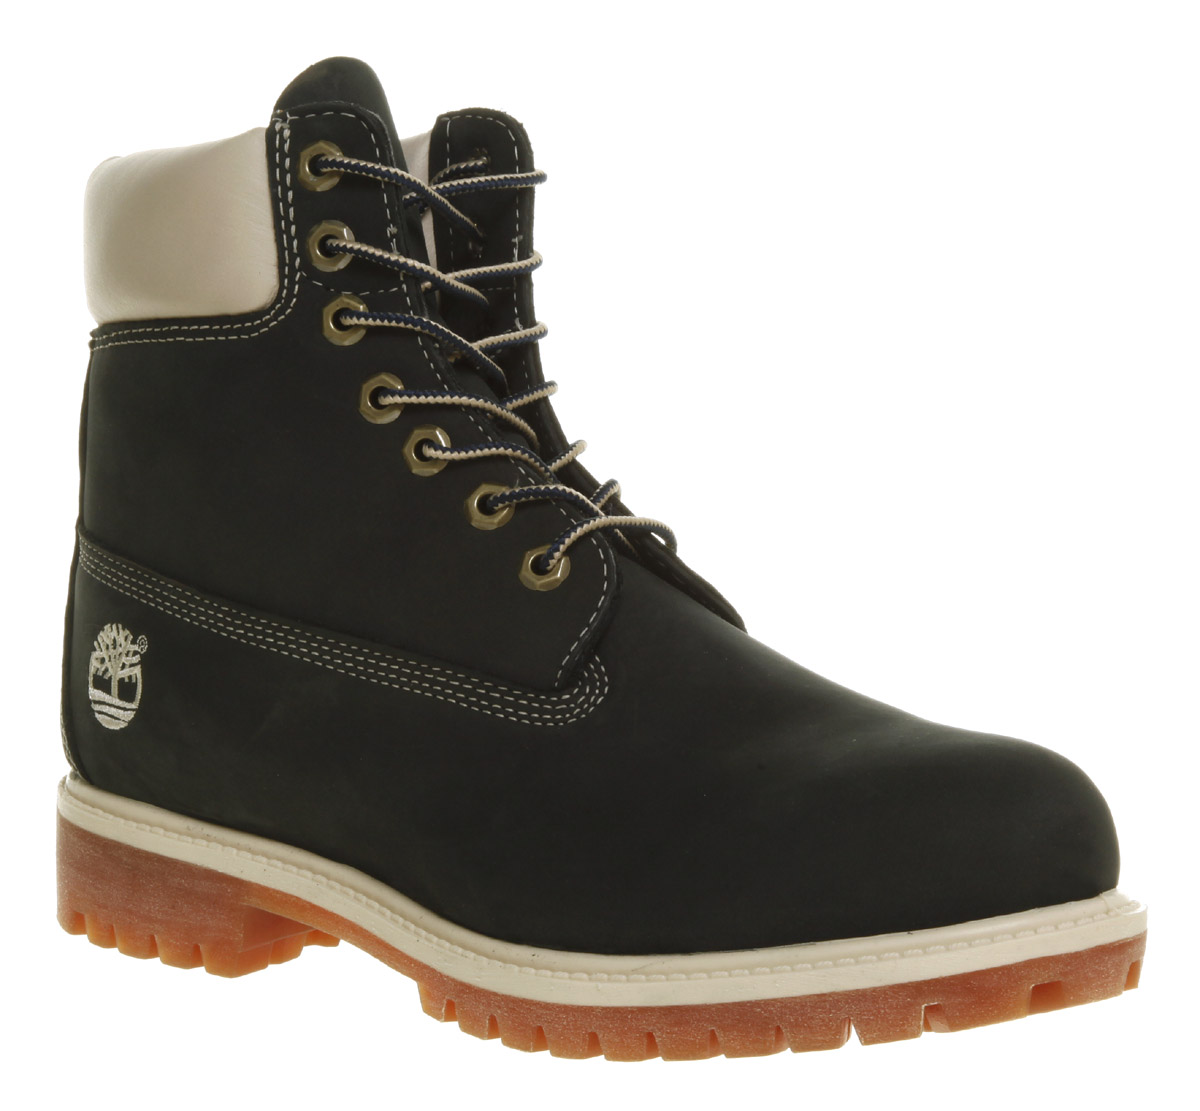 Beautiful The Lowest Price Timberland Women - Women Shoes Timberland 6-In Premium Waterproof Navy Blue Cheap